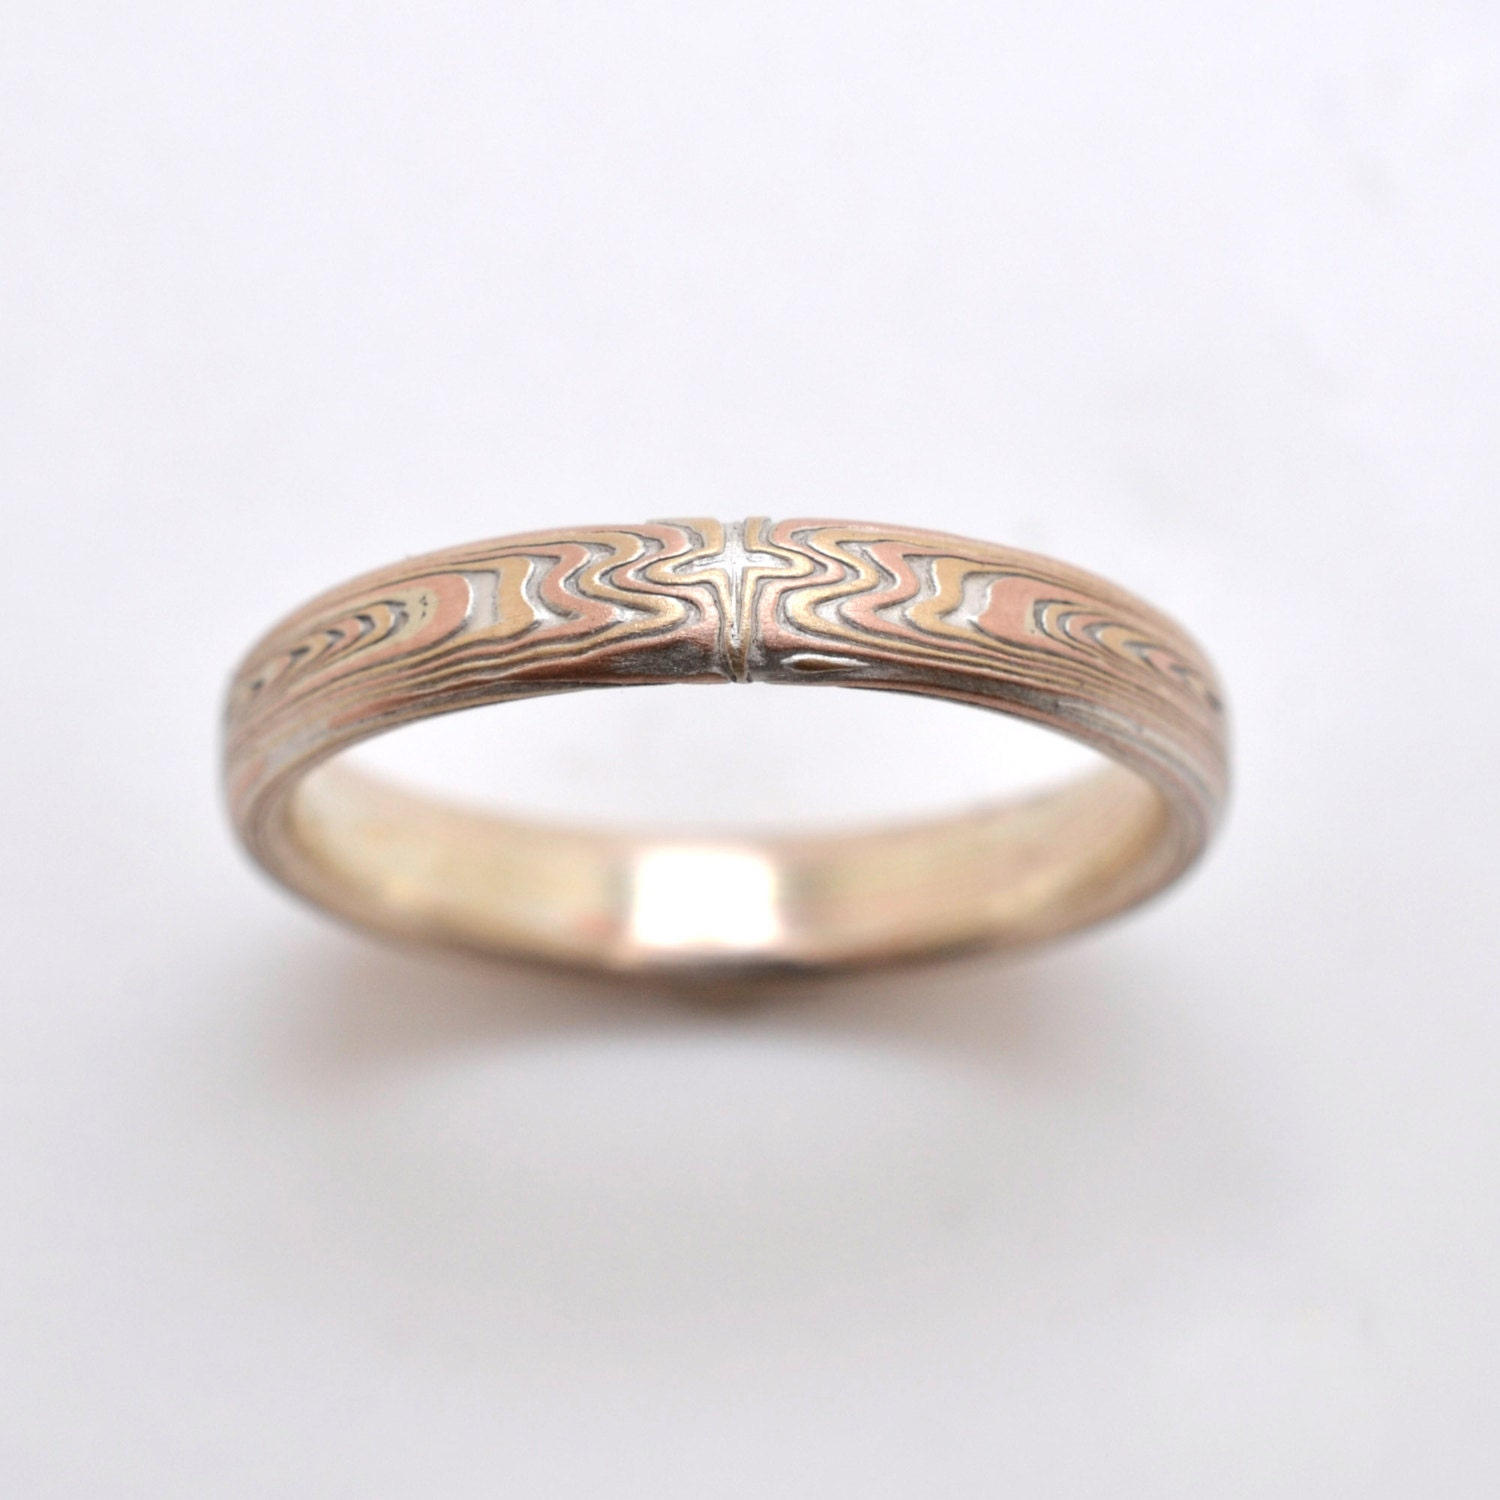 on rings super show size engagement thin s shortish with rose wedding finger gold me band bands